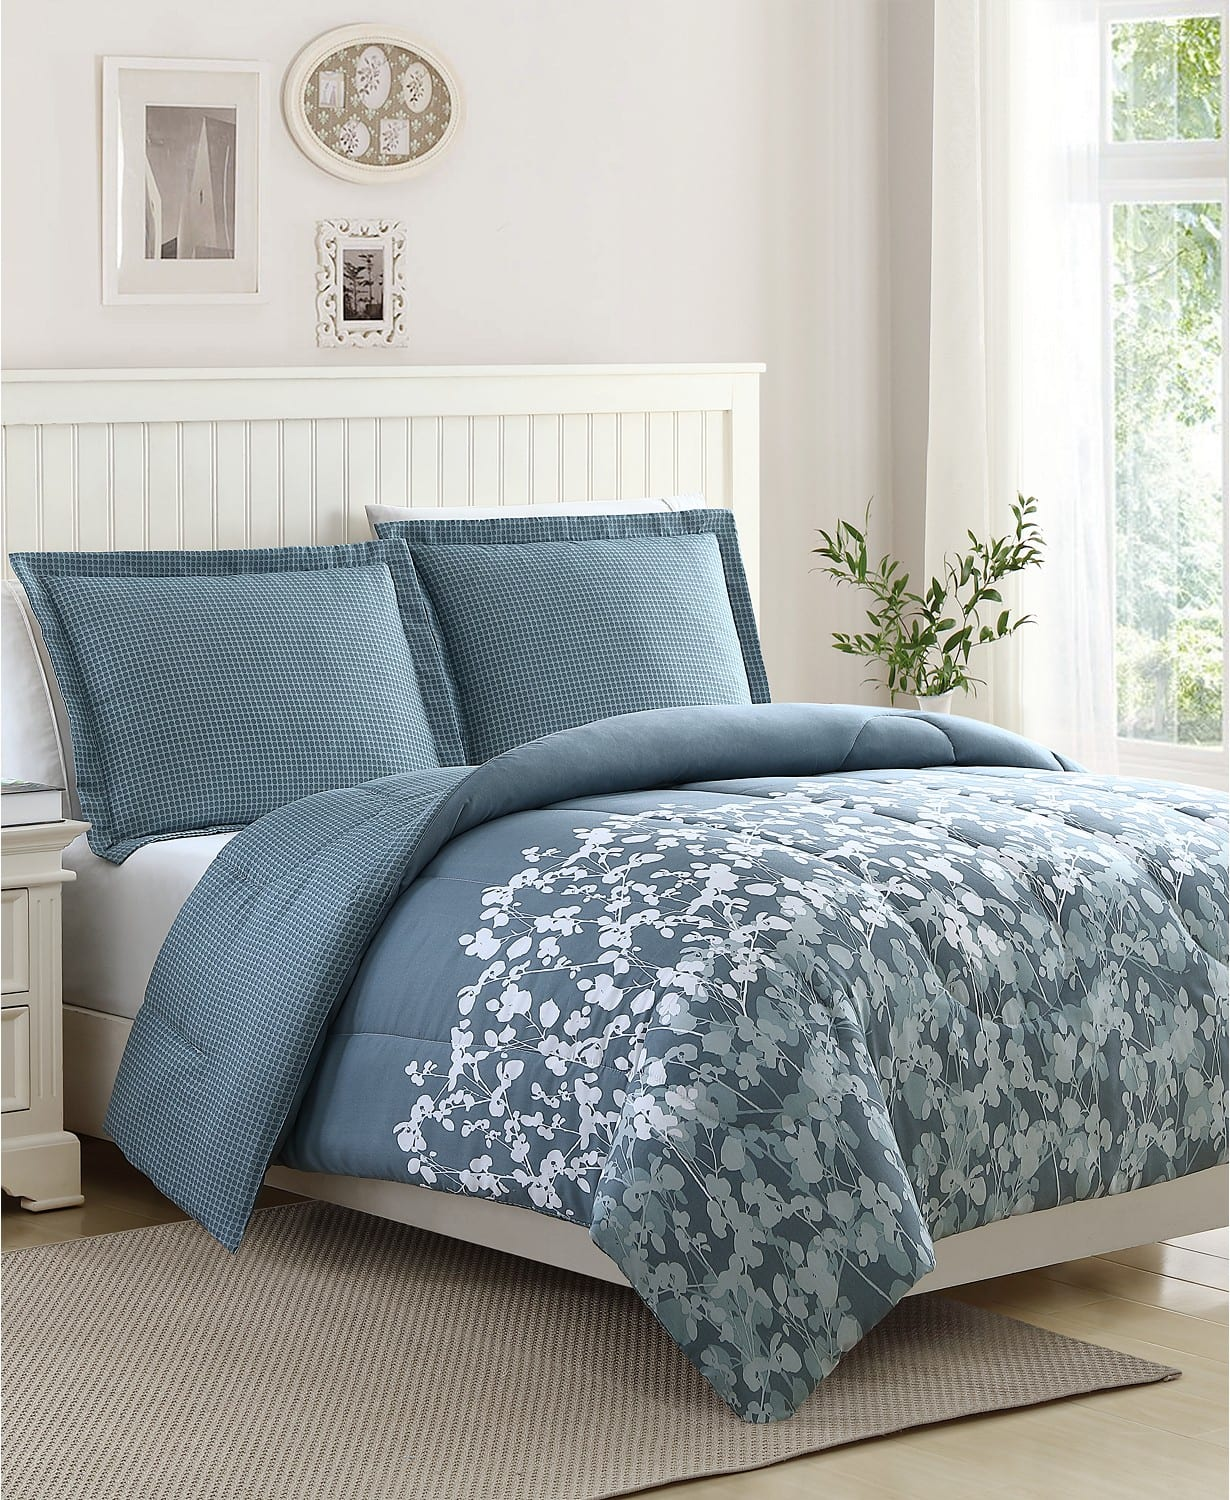 3-Piece Comforter Sets (Multiple Styles) $19.99